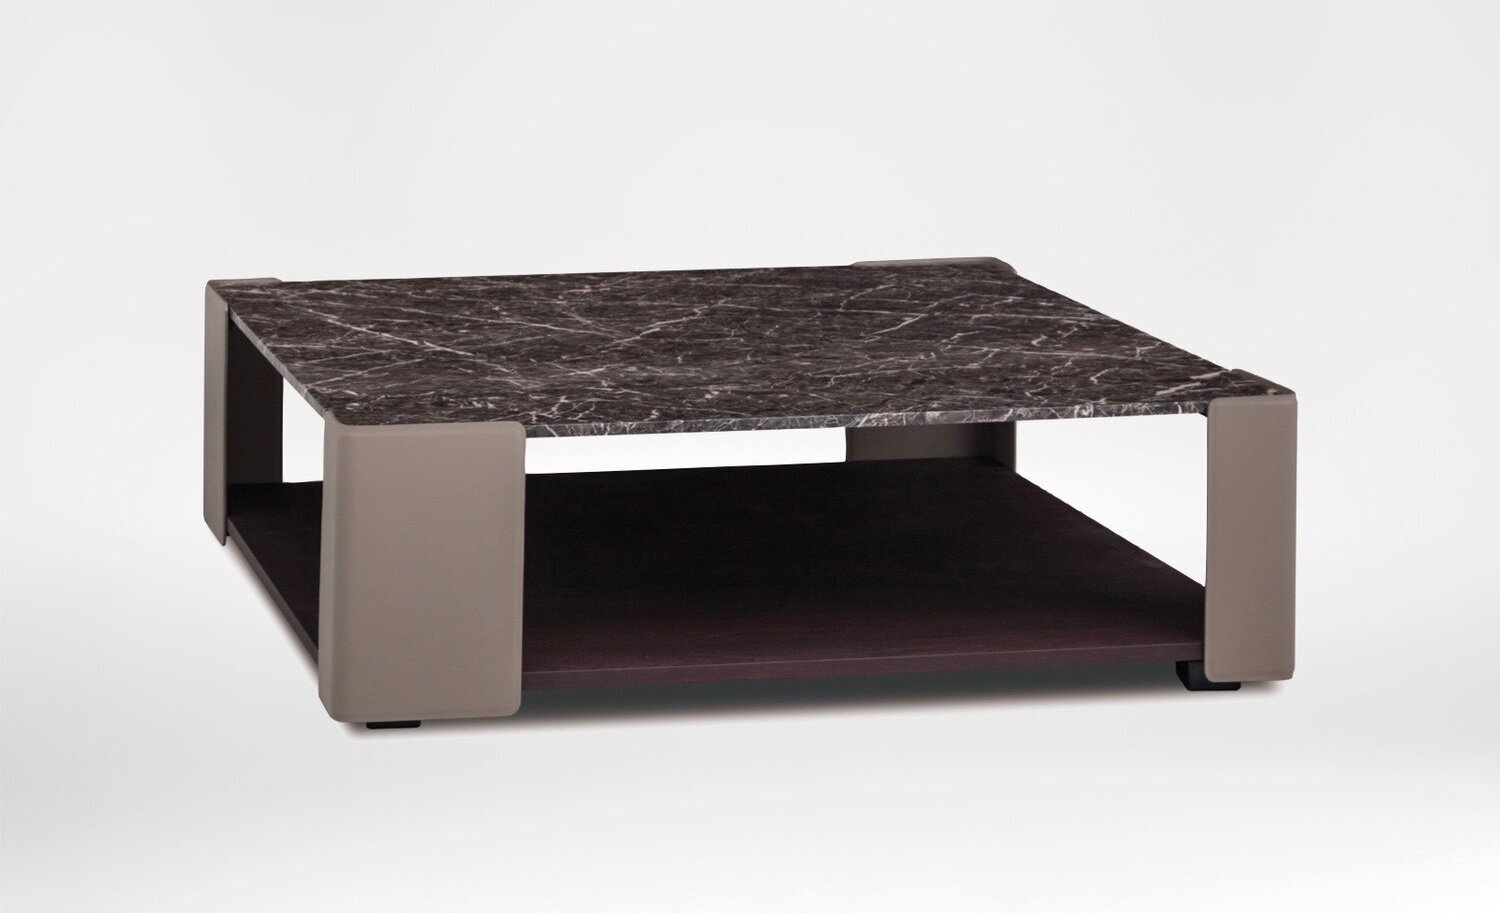 rubix coffee table - Bold, regal, and confident, Rubix Coffee Table is streamlined to perfection.